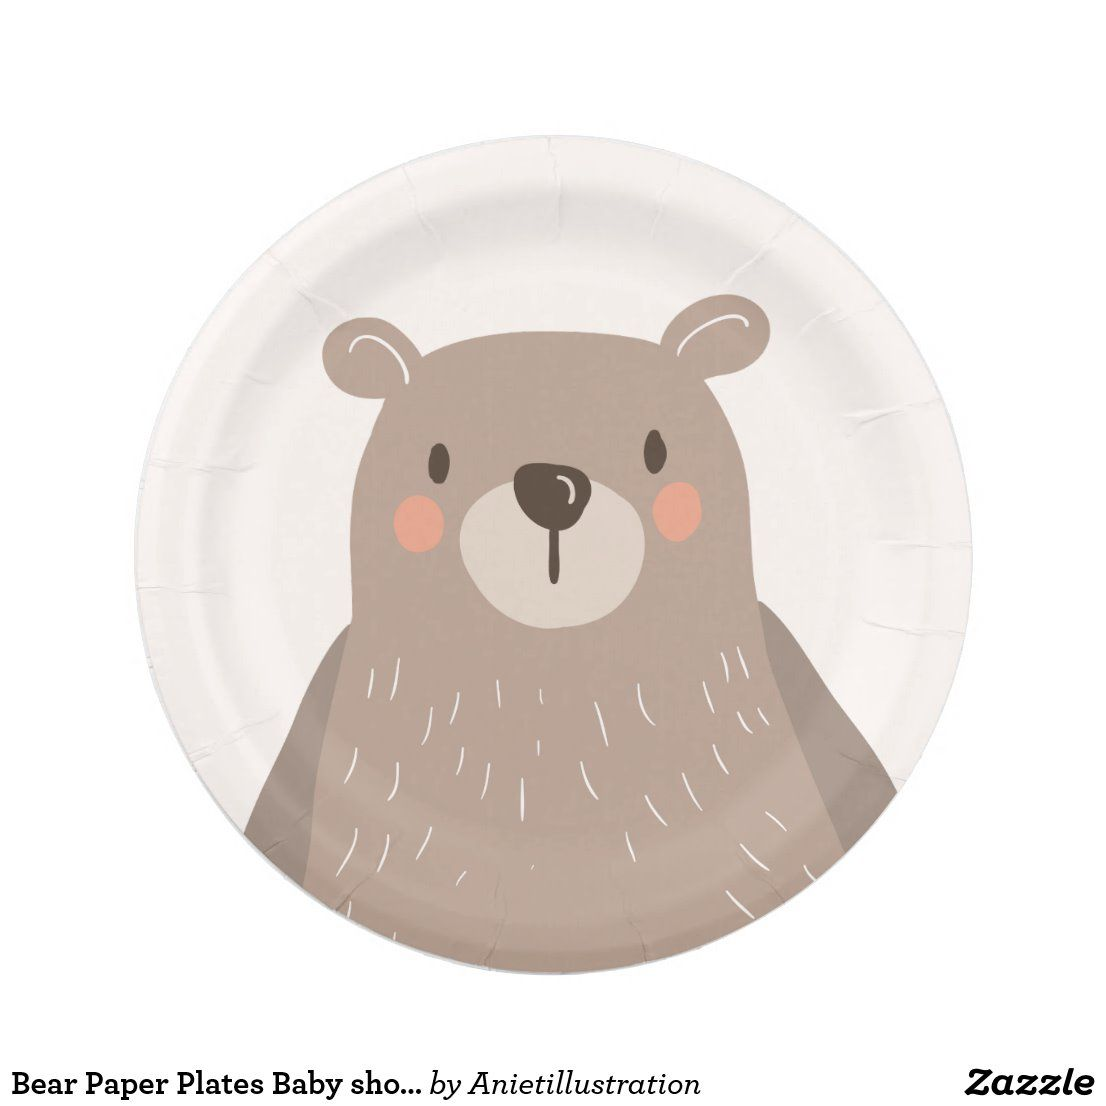 Paper plates Celebration|Disposables Plates|Customize 9/' in size Bear Theme|Baby Shower Event